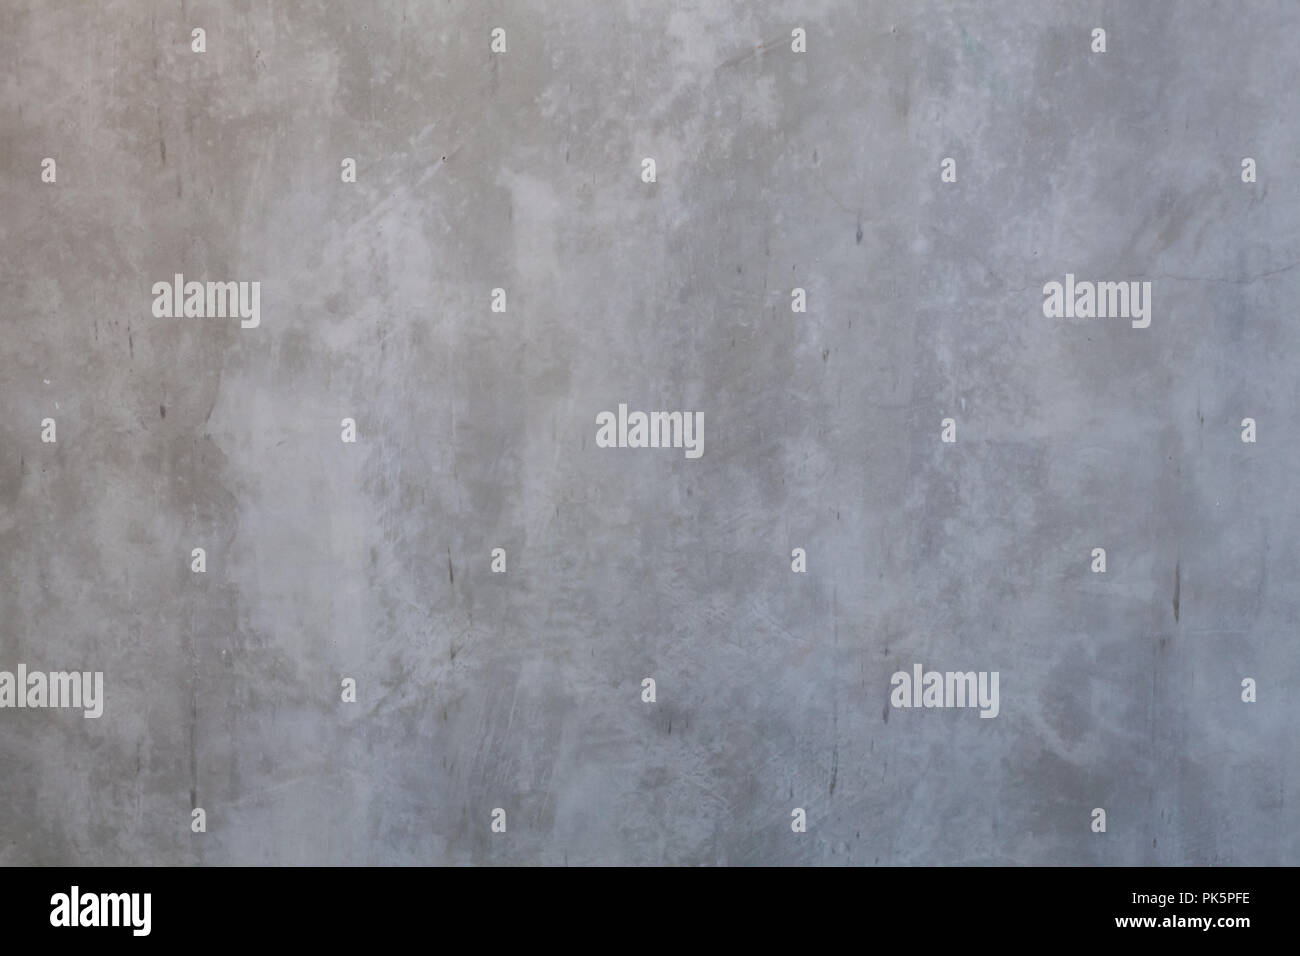 Light bare polished exposed cement texture pattern on house wall surface background. Detail backdrop, abstract design, interior architecture concept - Stock Image